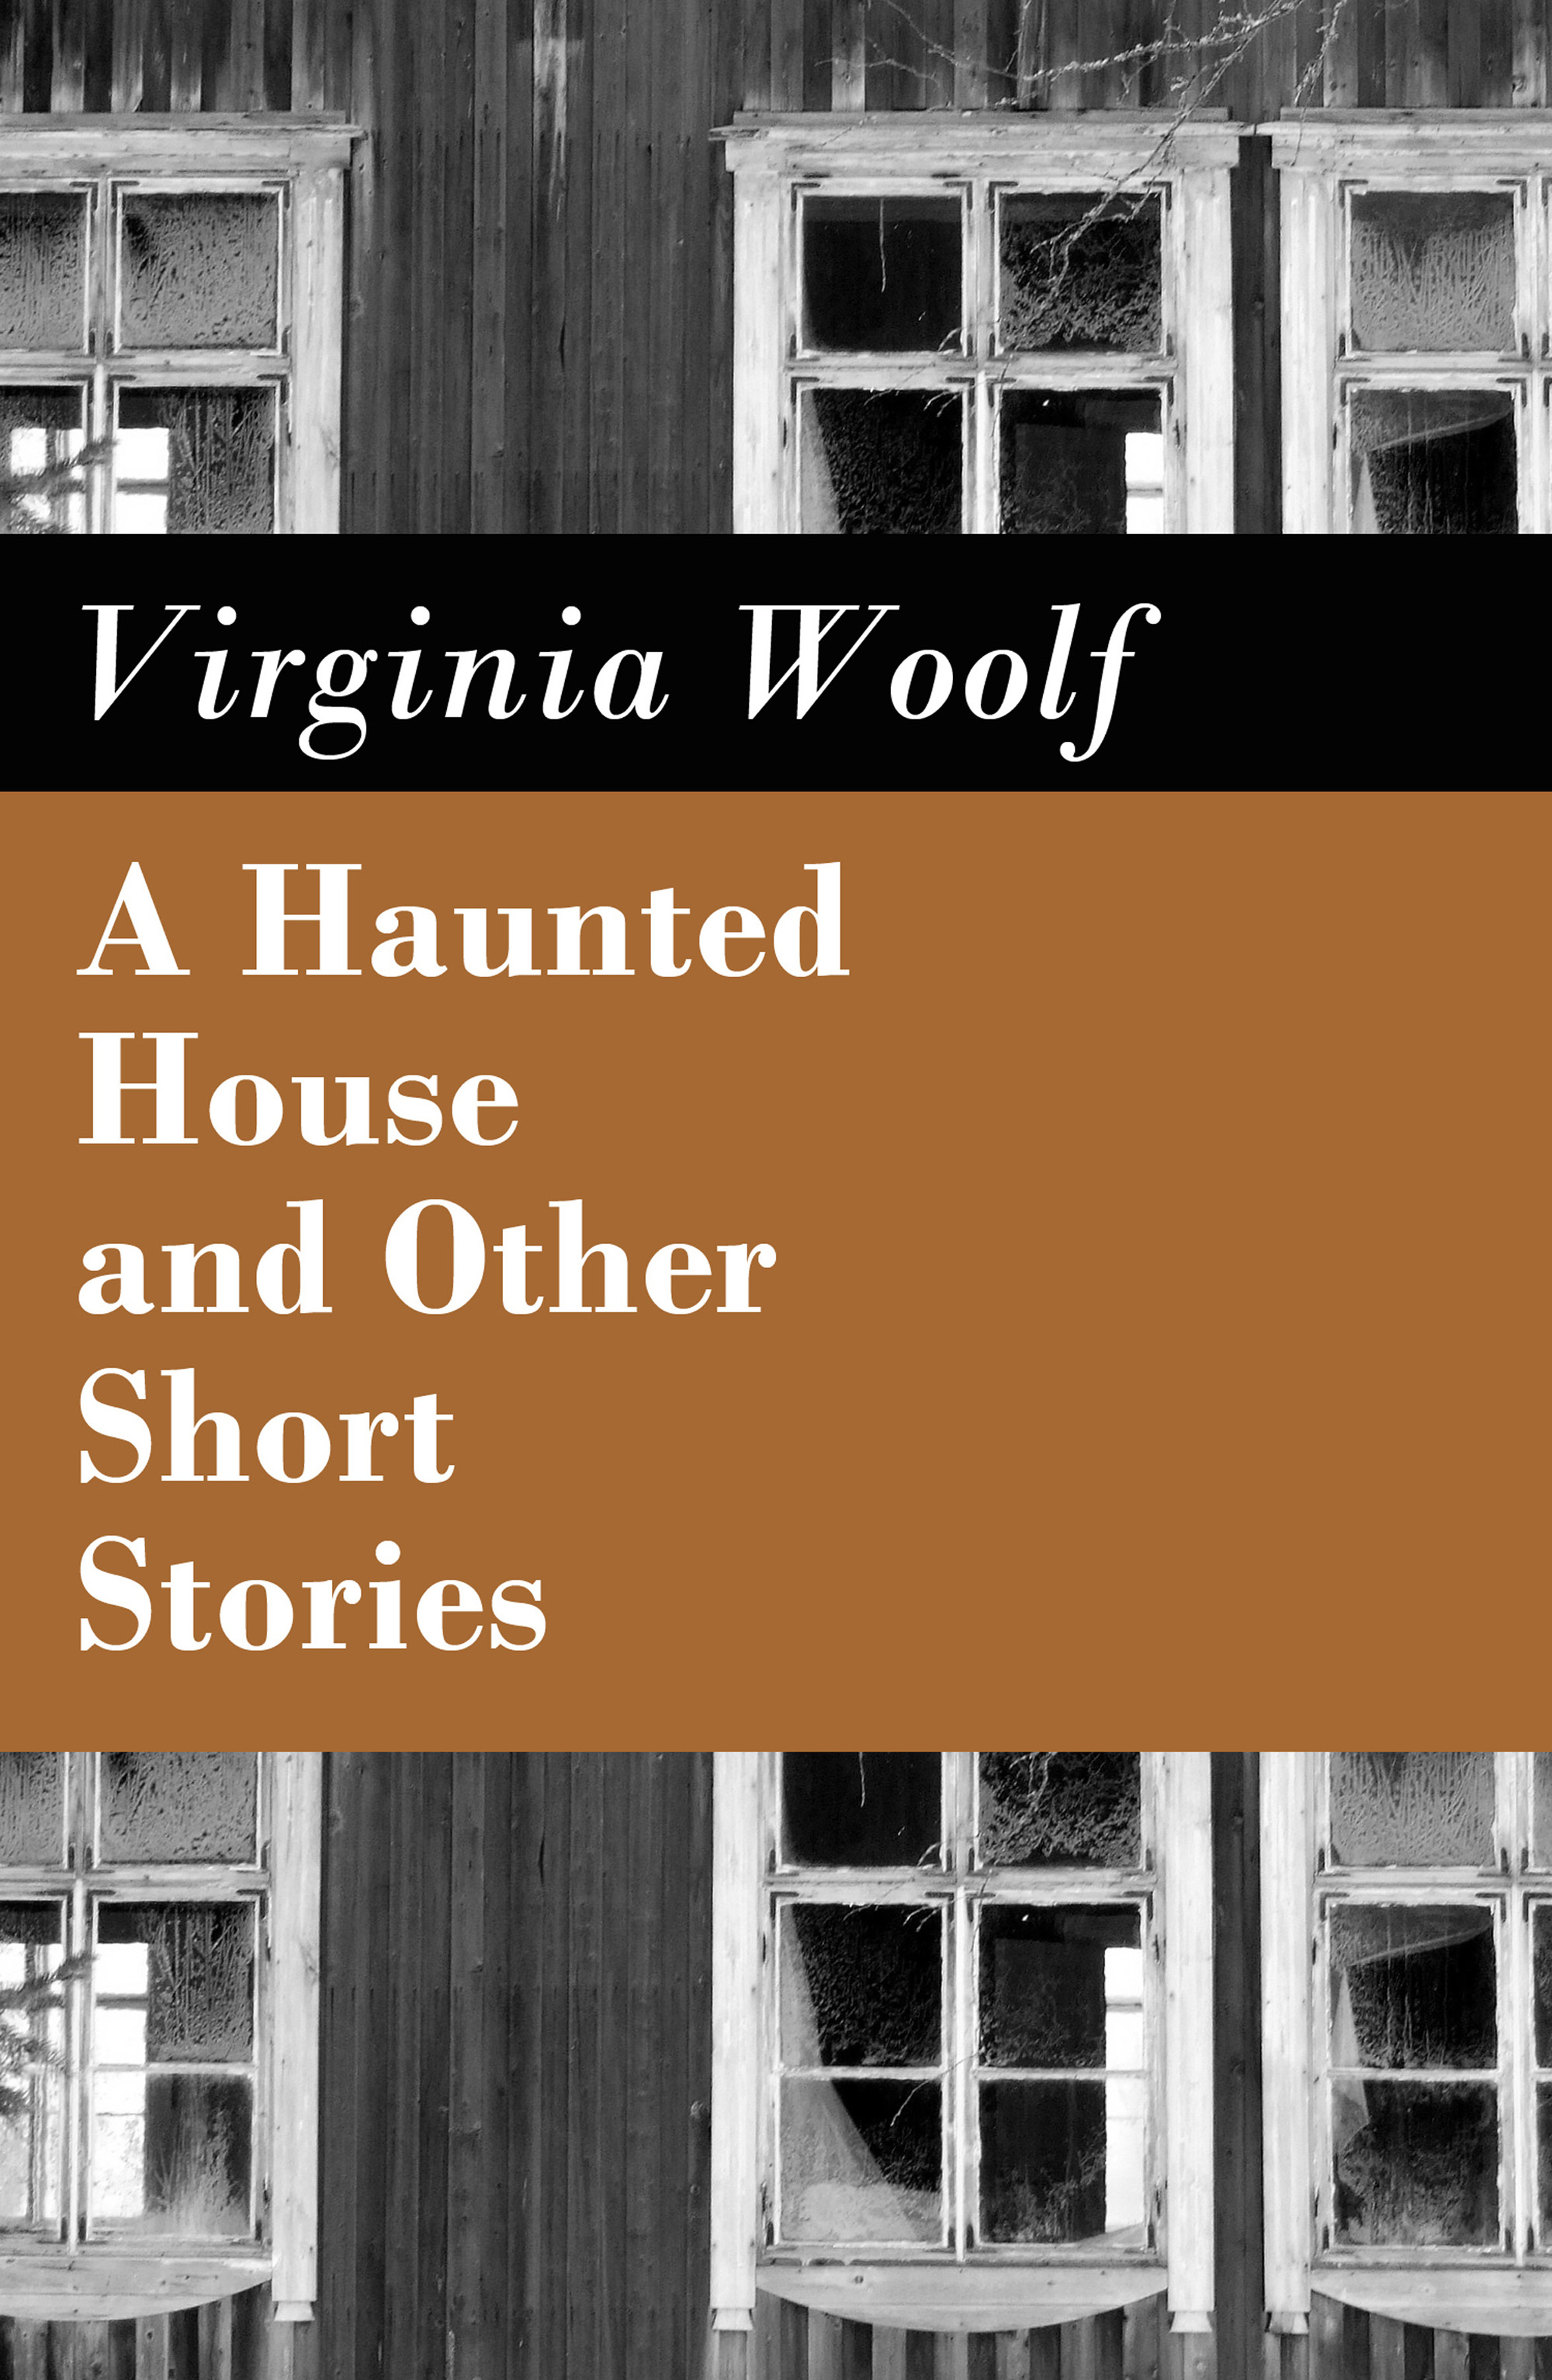 a haunted house and other short stories the original unabridged posthumous edition of 18 short stories